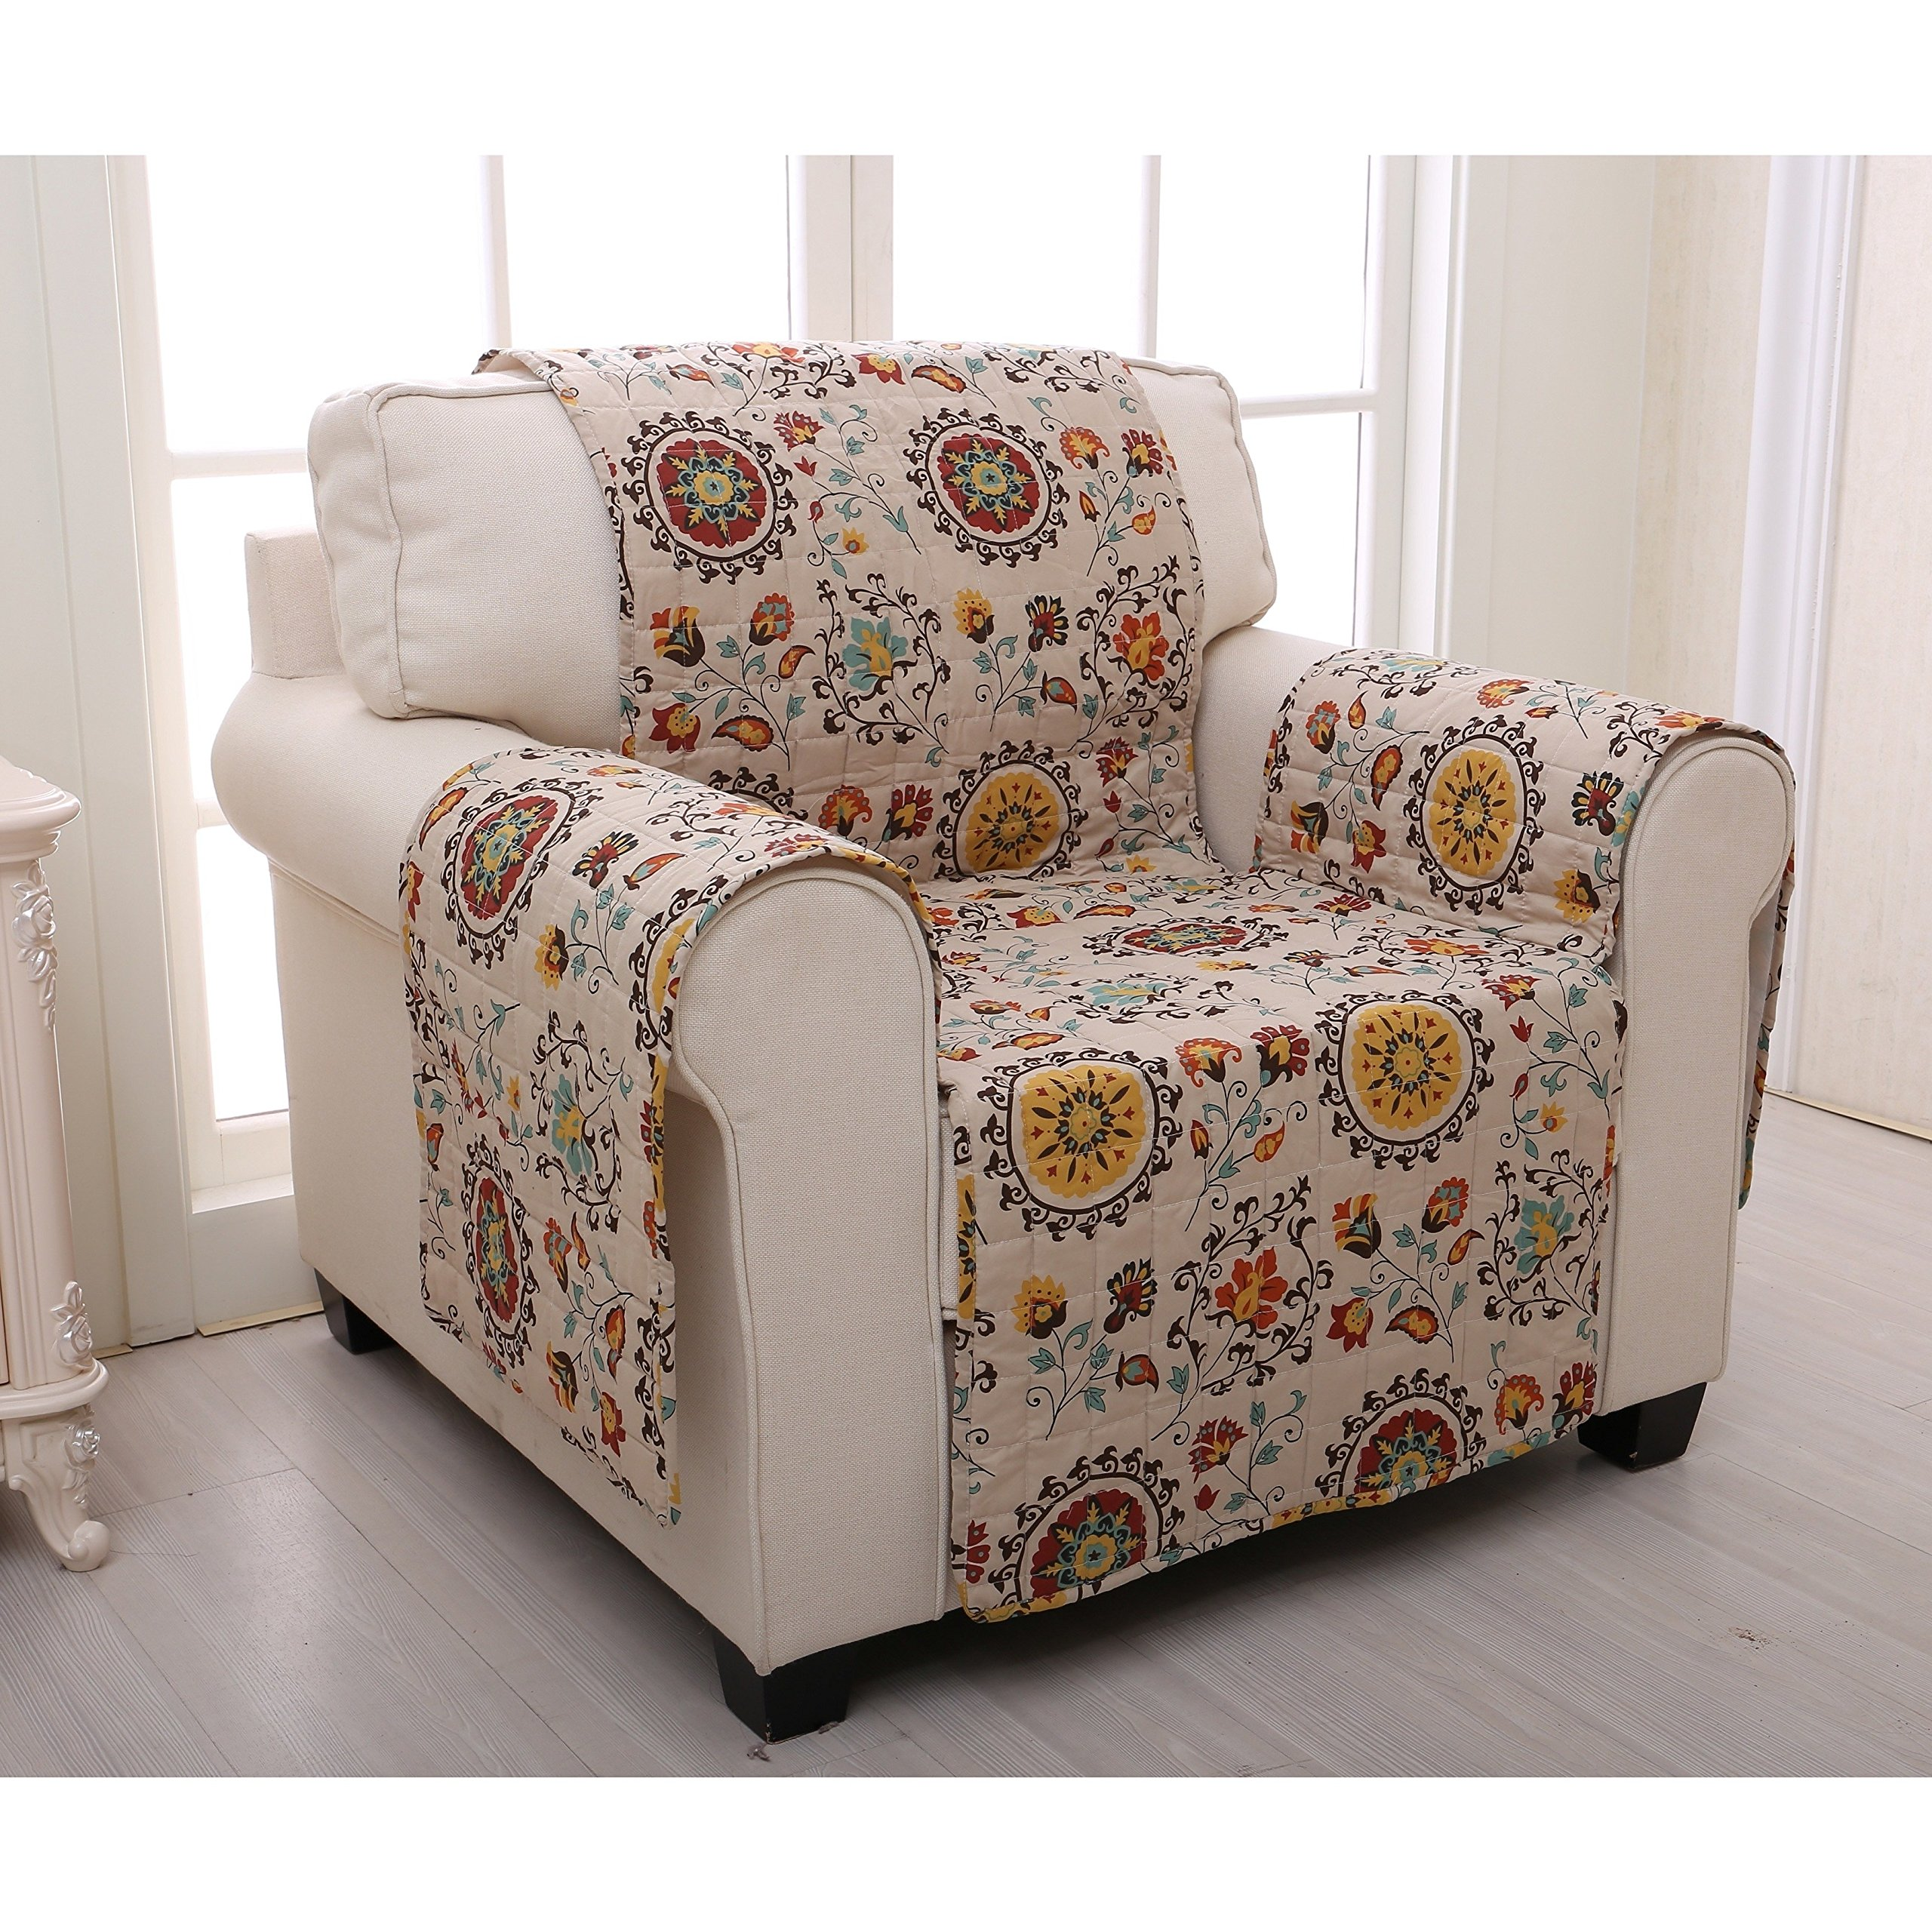 MN 1 Piece White Red Floral Theme Chair Protector, Geometric Flower Pattern Couch Protection Flowers Roses Leaves Furniture Protection Cover Pets Animals Covers Nature Reversible, Polyester